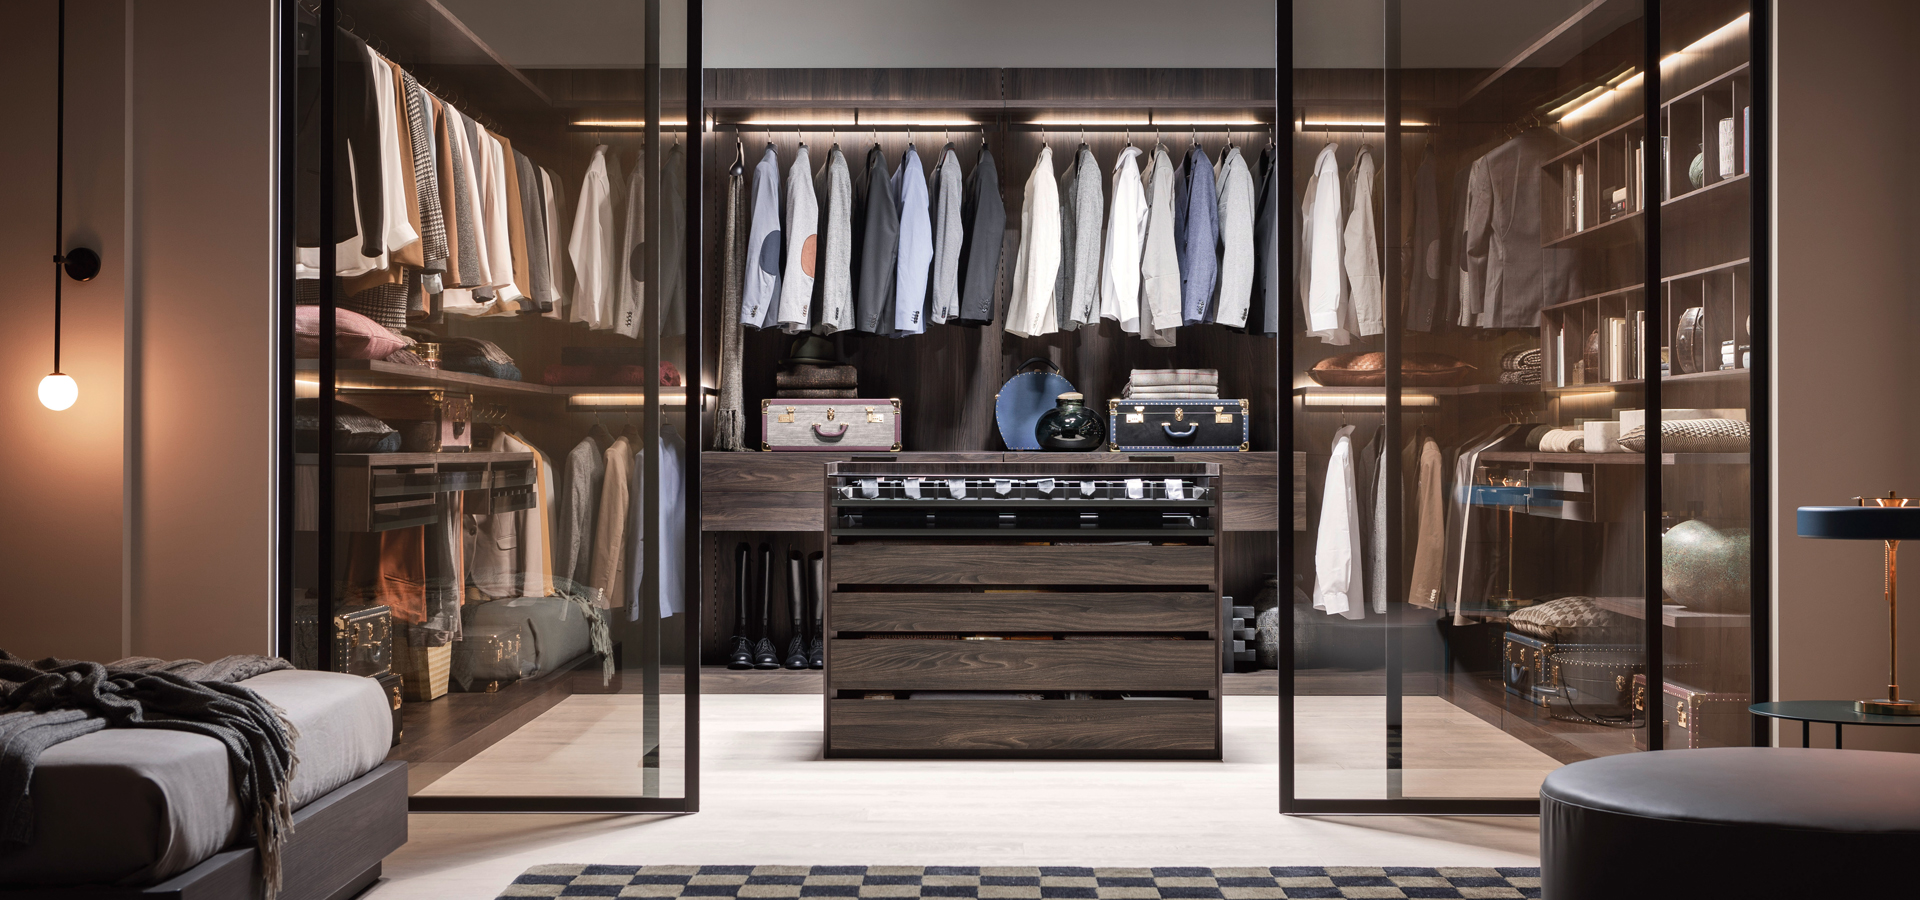 Walk In Wardrobes - Fitted Bedroom Furniture | Wardrobes ...